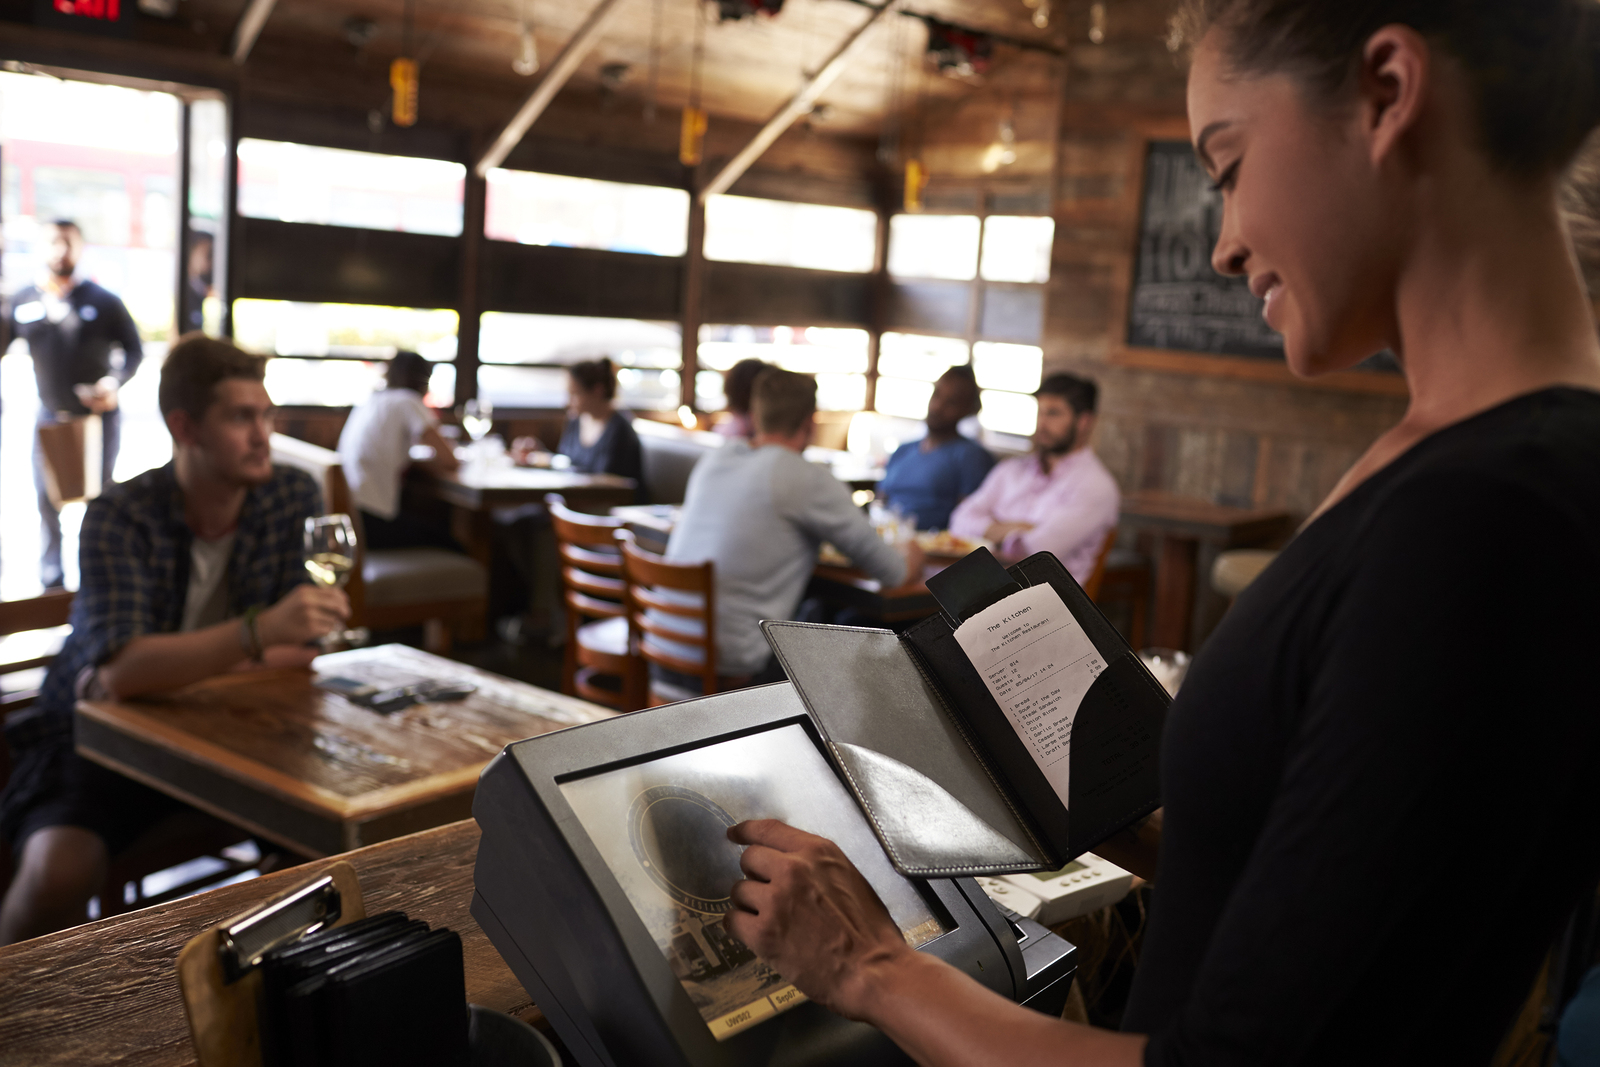 EPoS Software - Young woman preparing bill at restaurant using touch screen